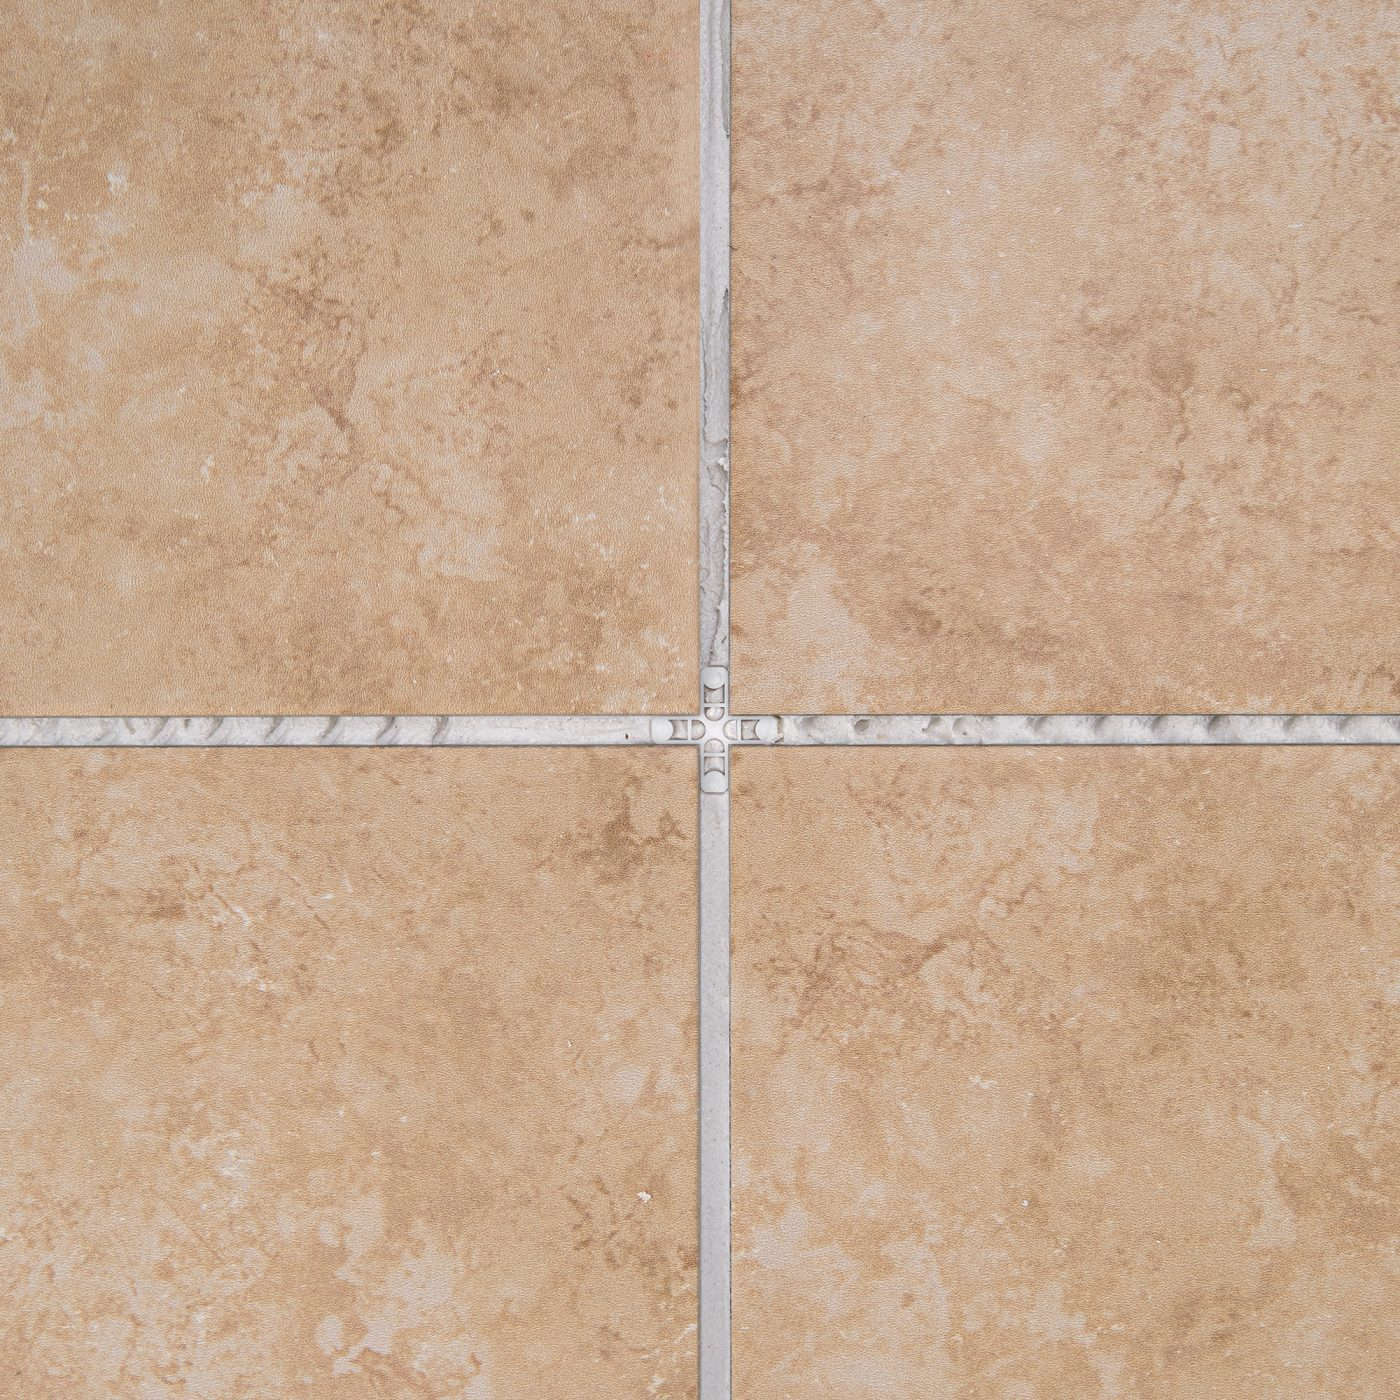 Hard Leave-in Tile Spacers